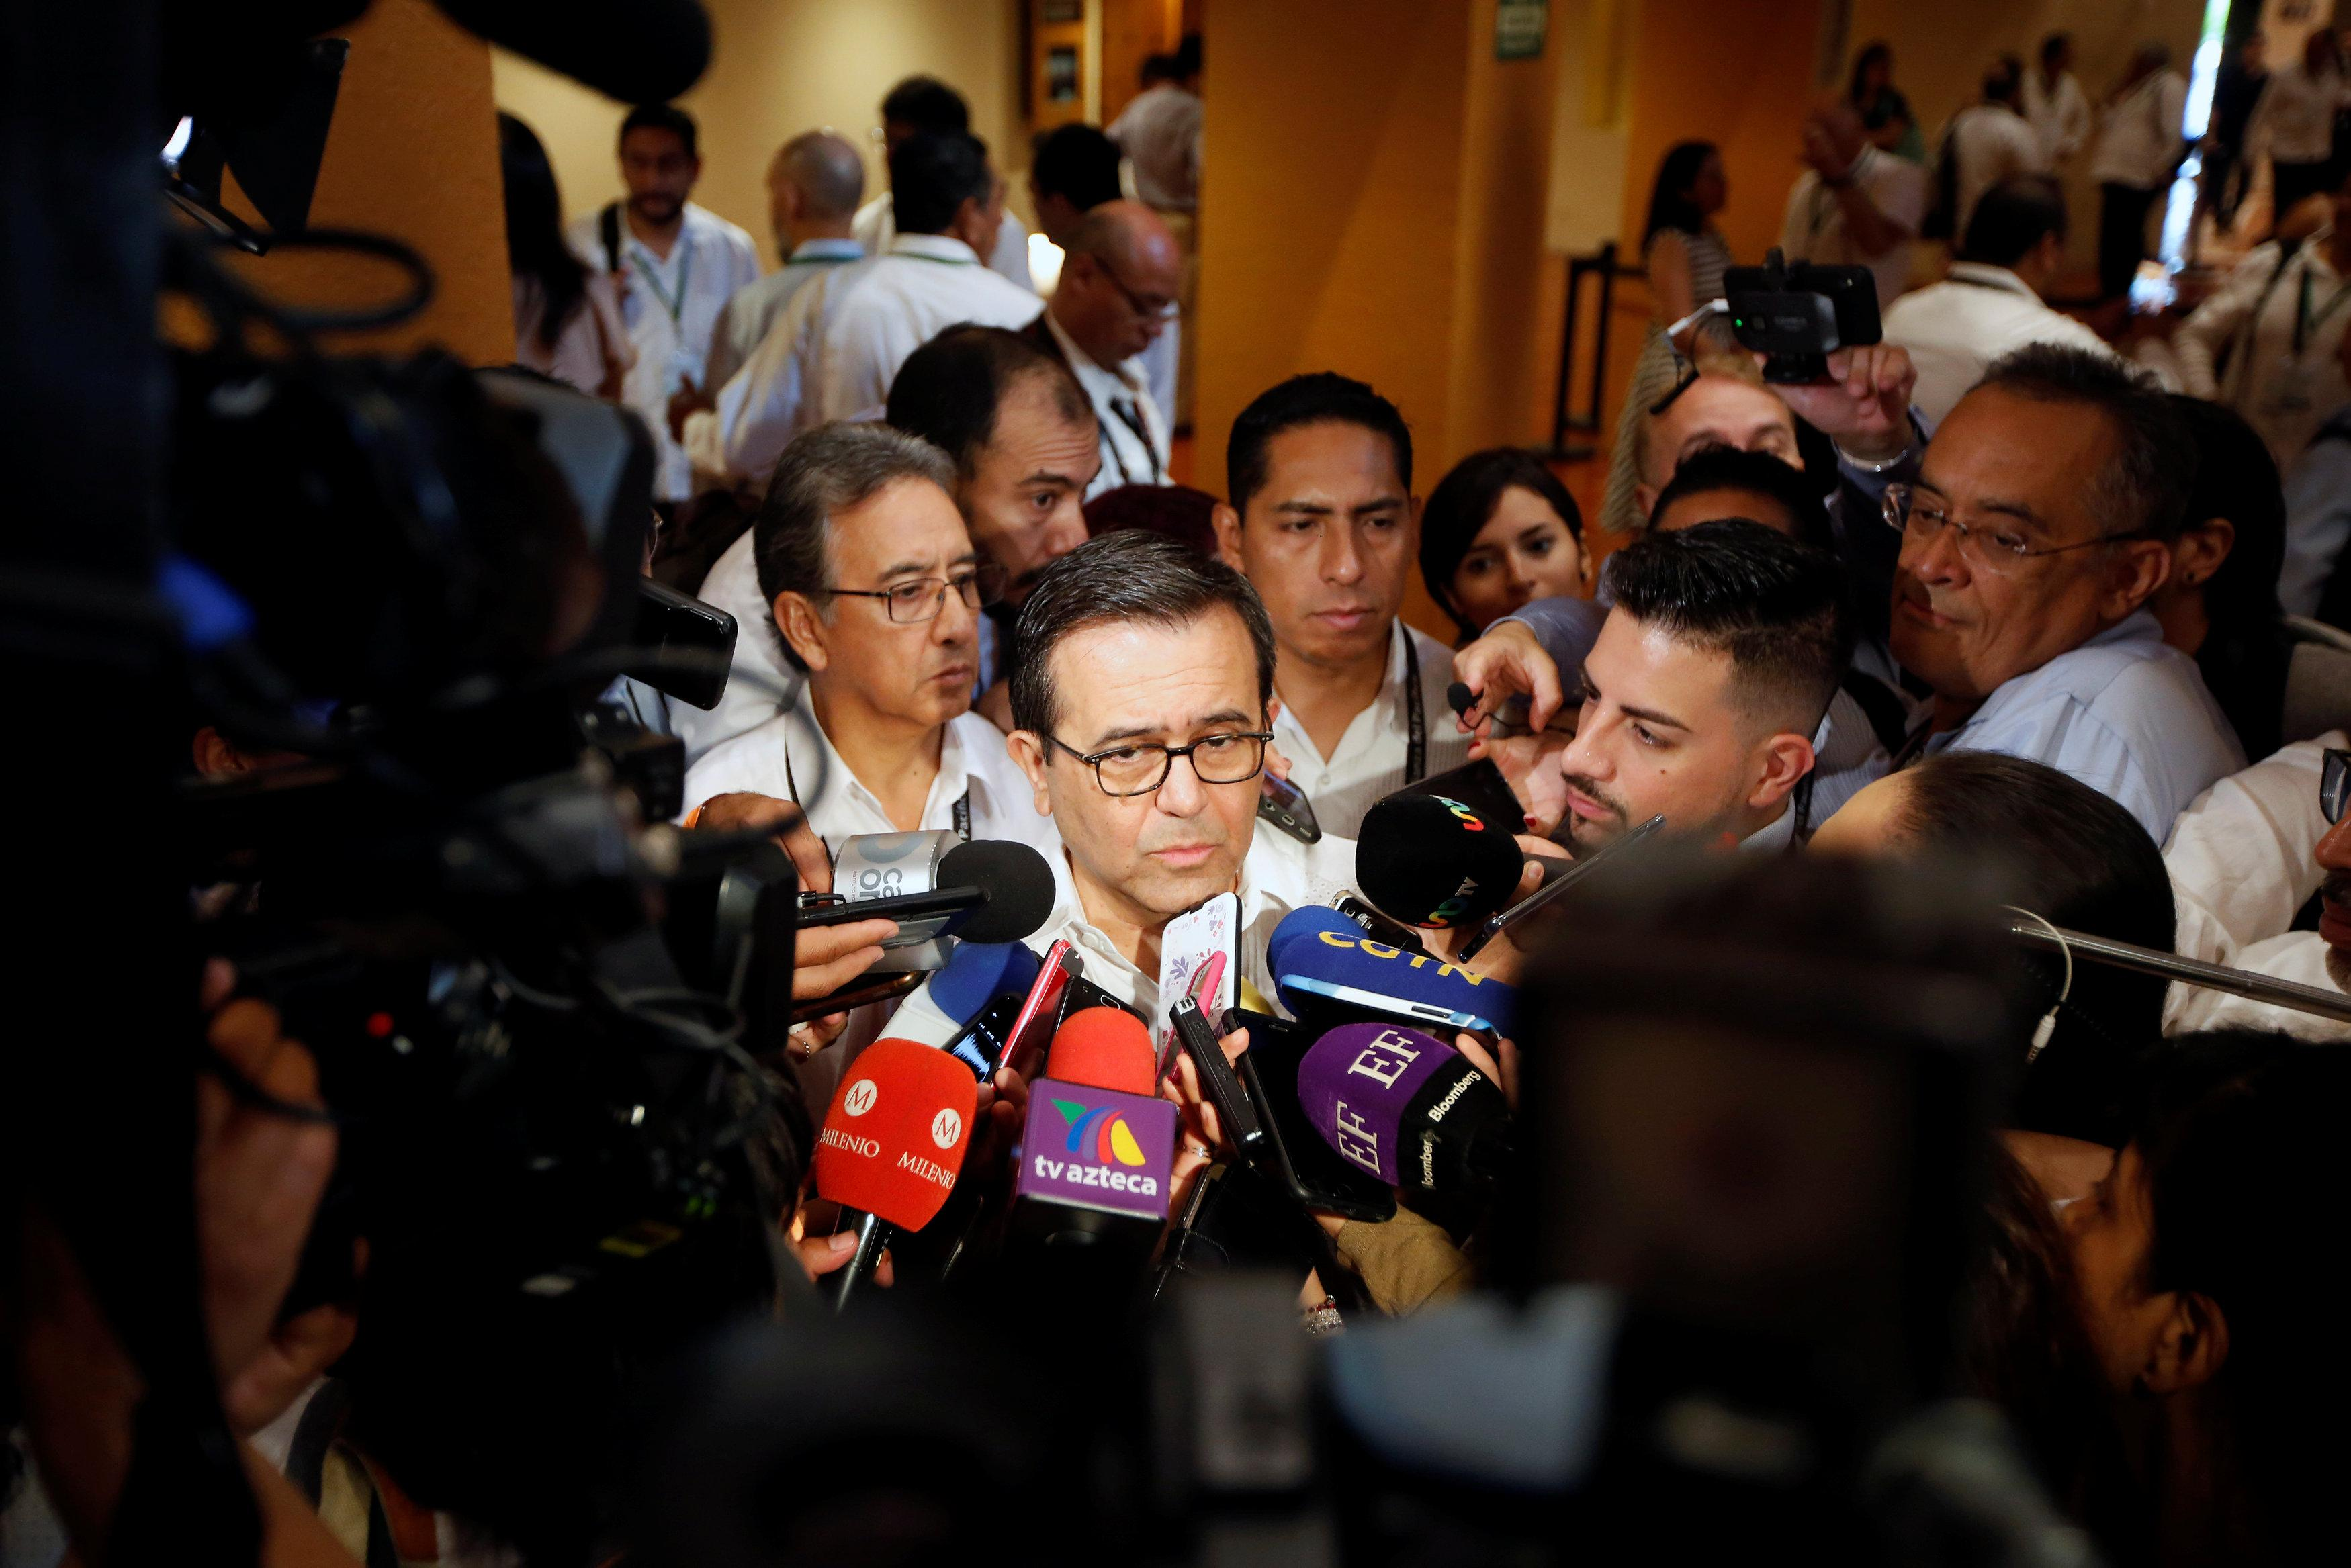 Mexico's Economy Minister Ildefonso Guajardo gestures to the media during the 5th Business Meeting of the Pacific Alliance in Puerto Vallarta, Jalisco, Mexico July 23, 2018. Carlos Jasso